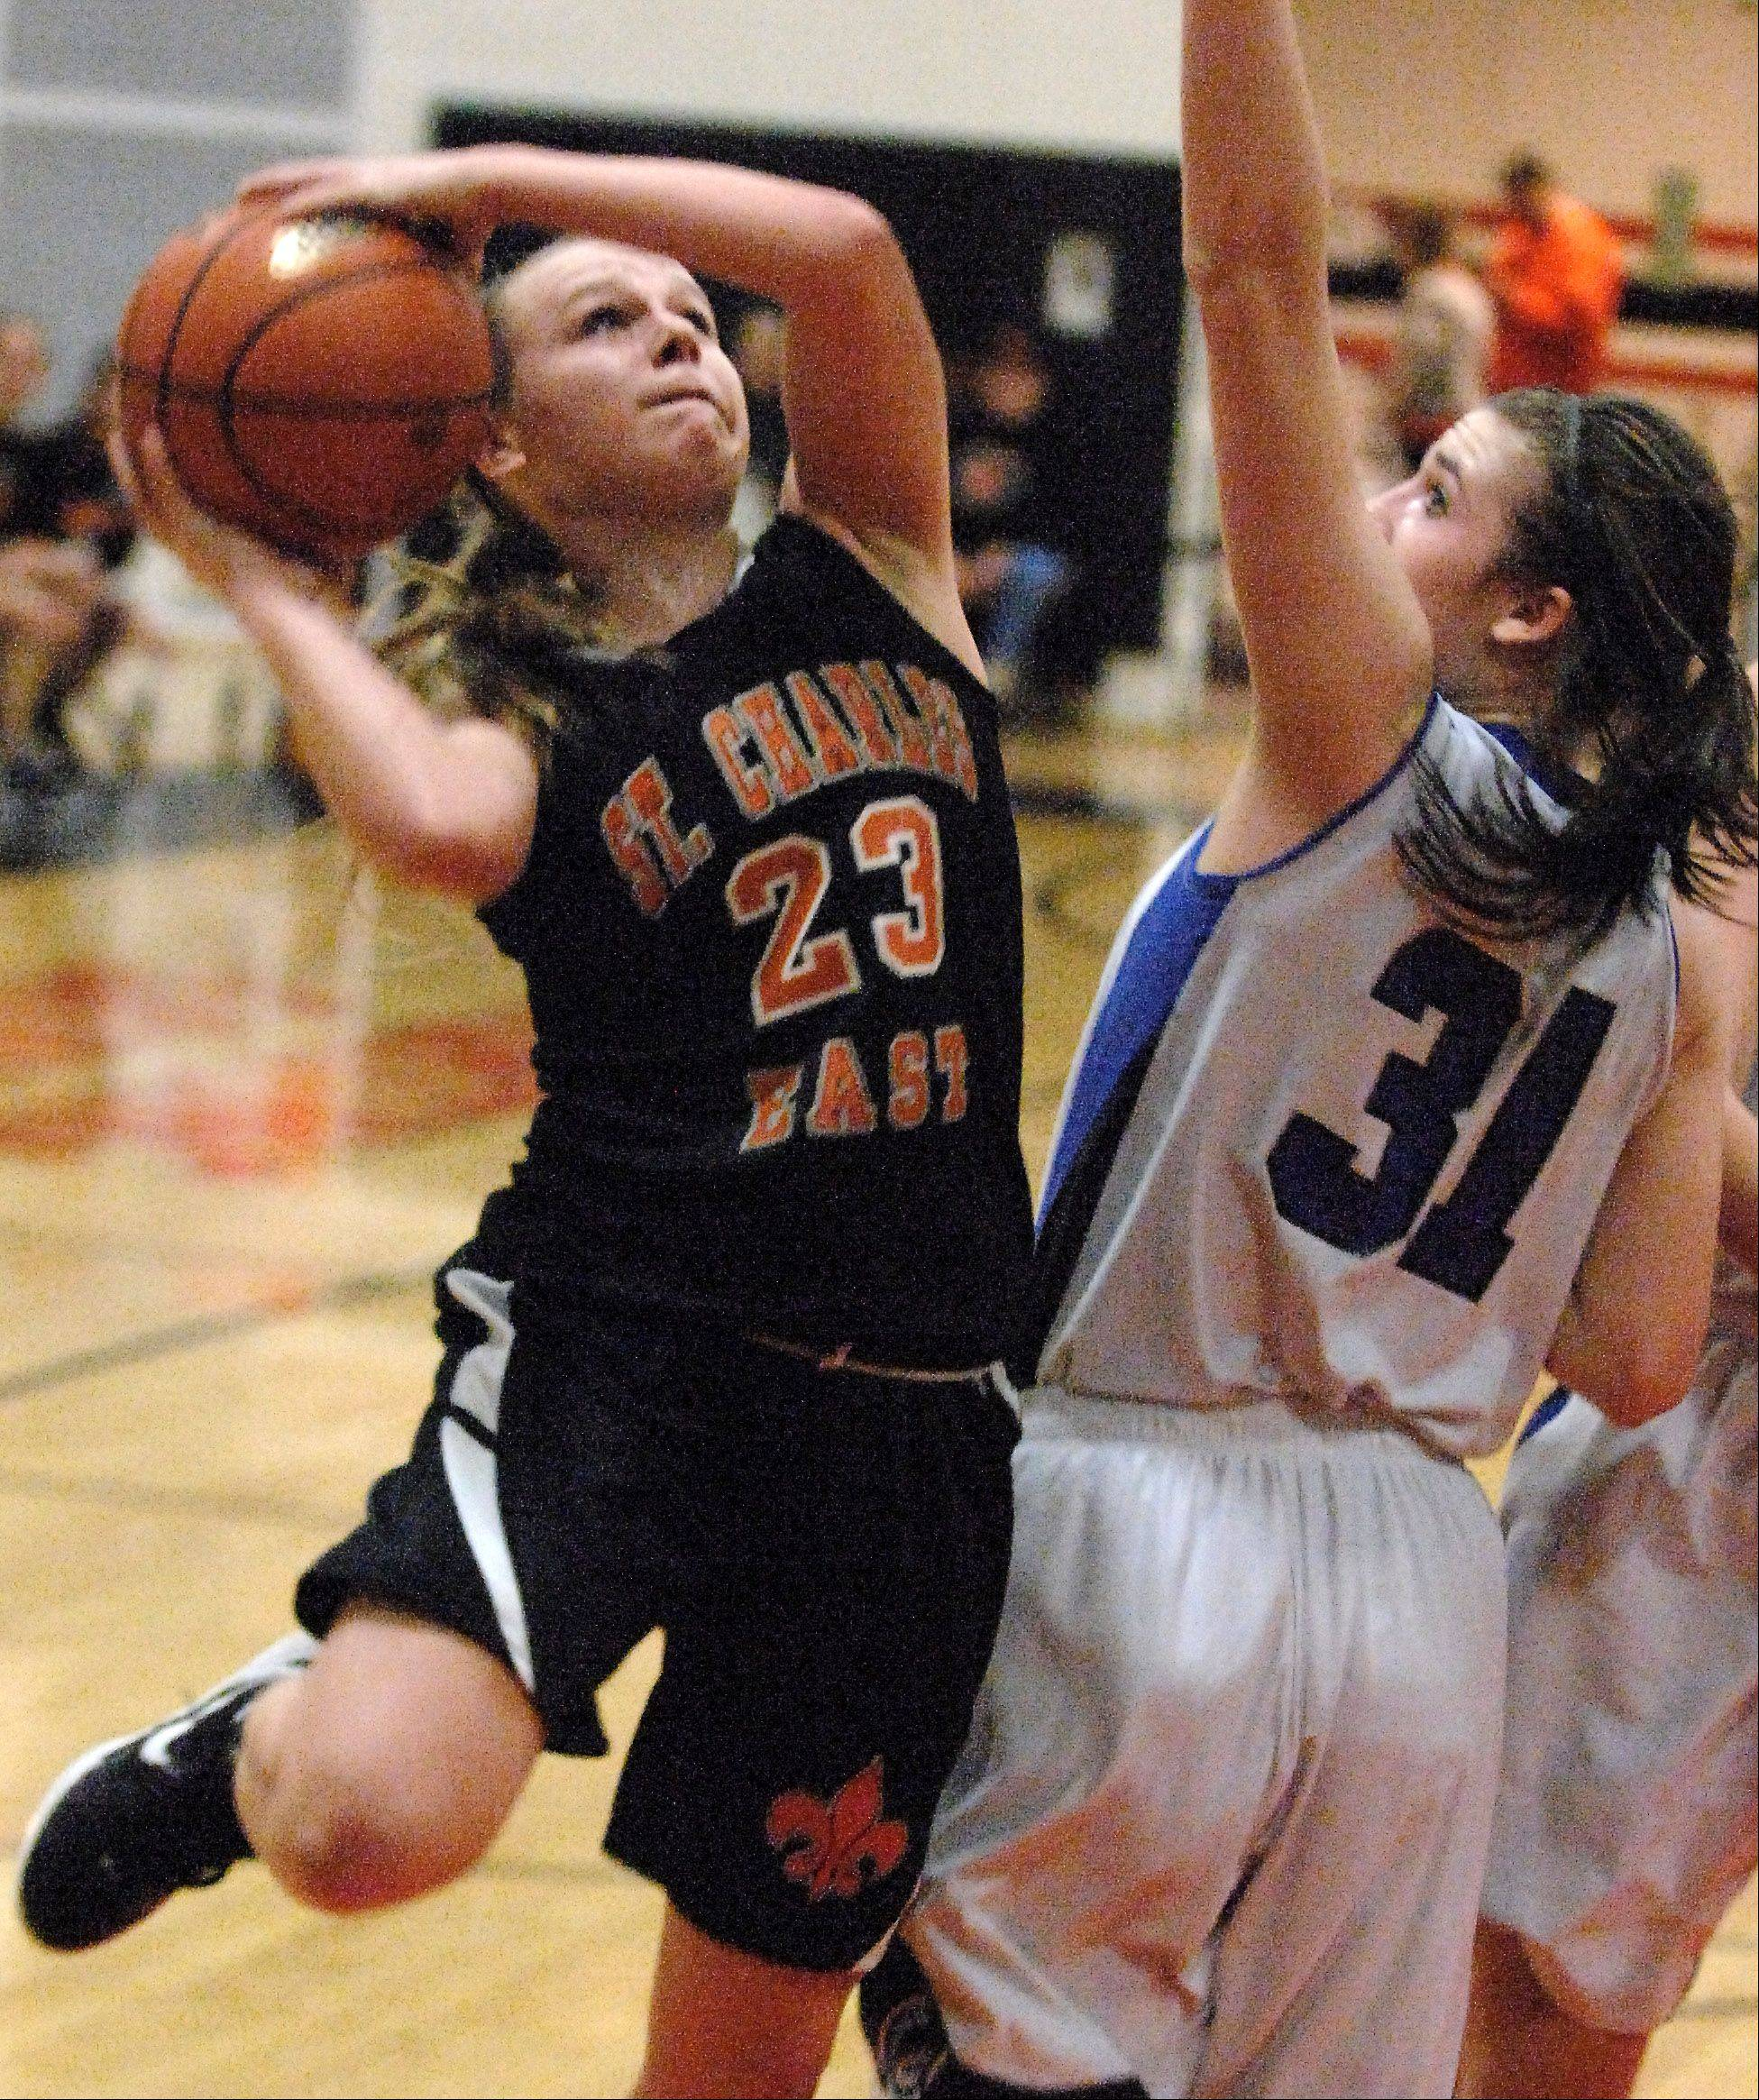 St. Charles East's Amanda Hilton puts up a shot over Geneva's Sami Pawlak during Thursday's regional championship game in St. Charles.